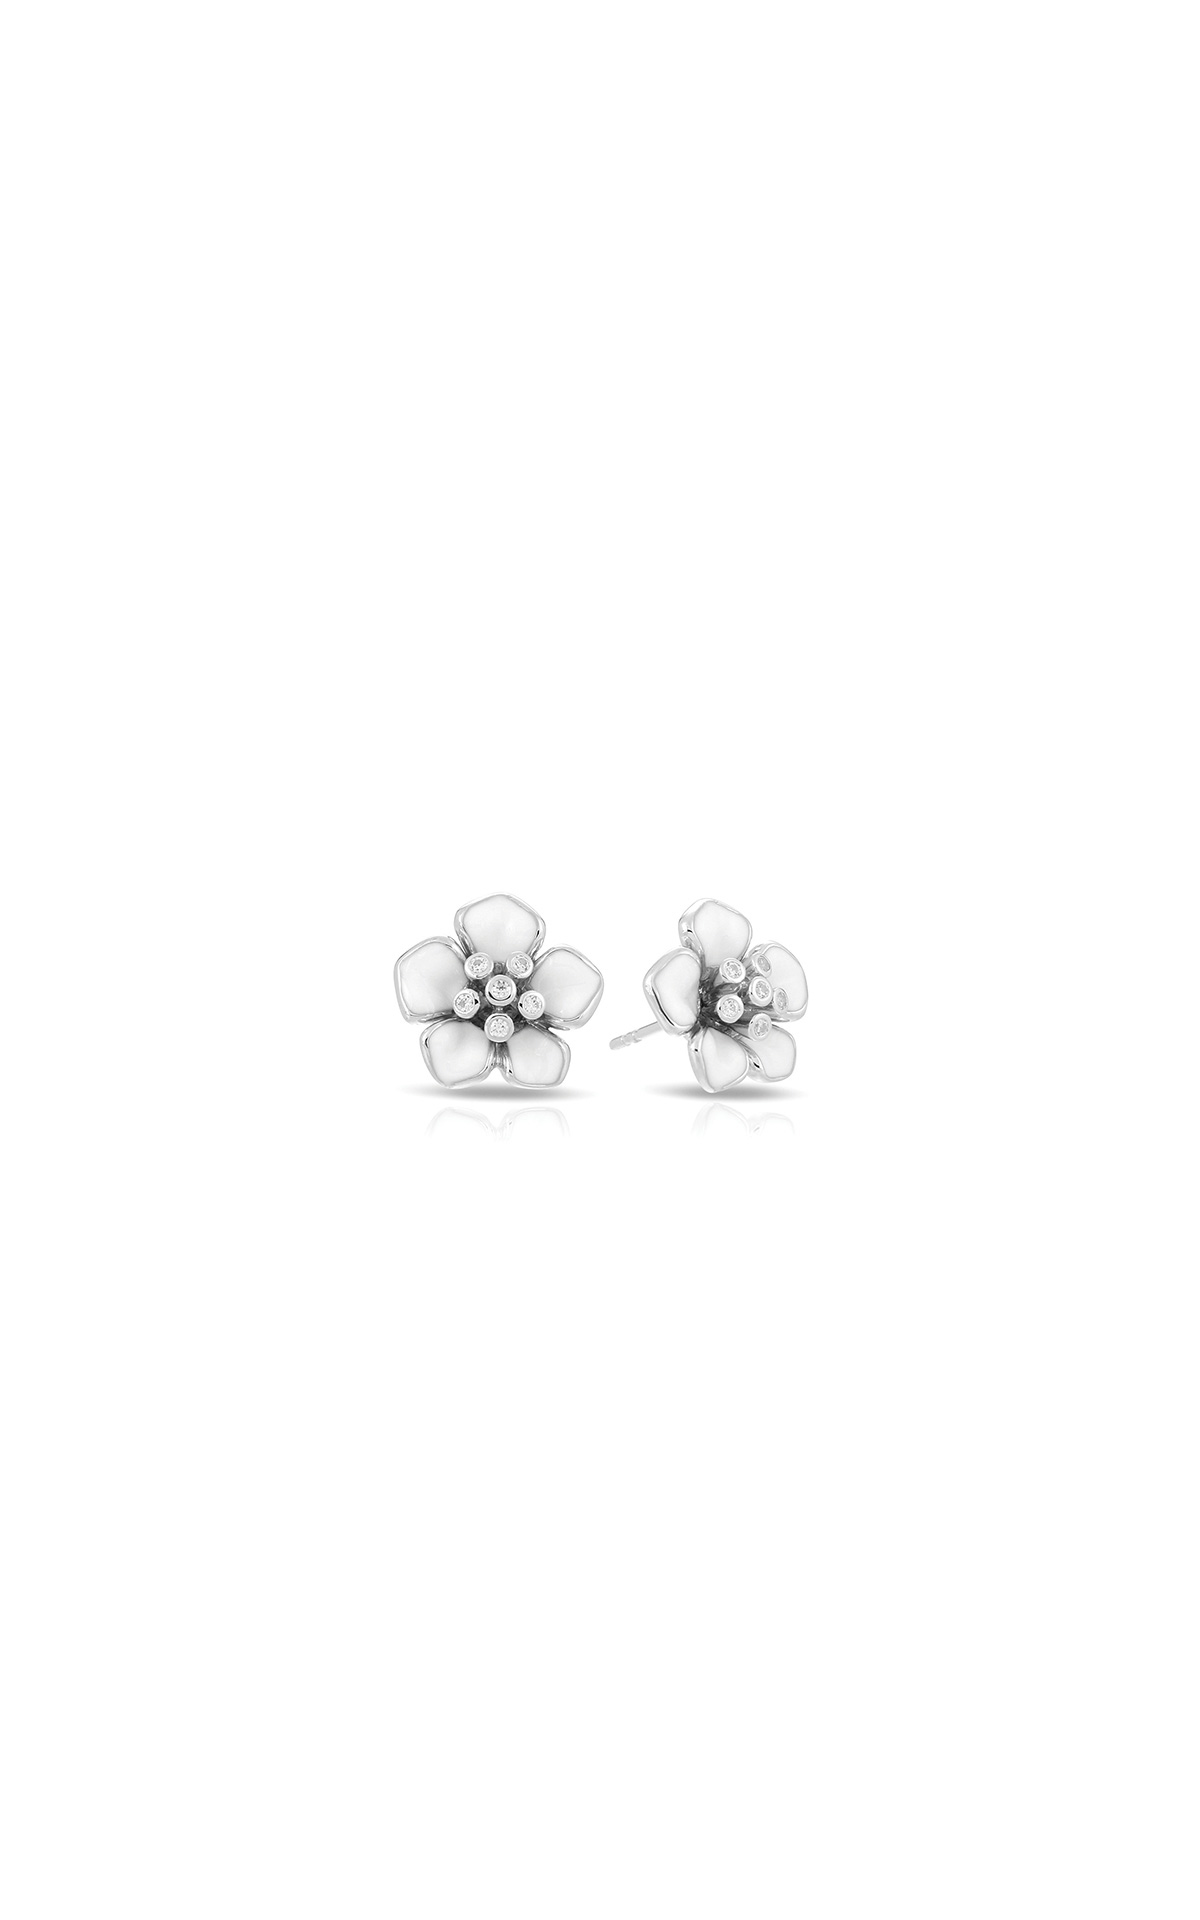 Belle Etoile Forget-Me-Not White Earrings 3021610701 product image